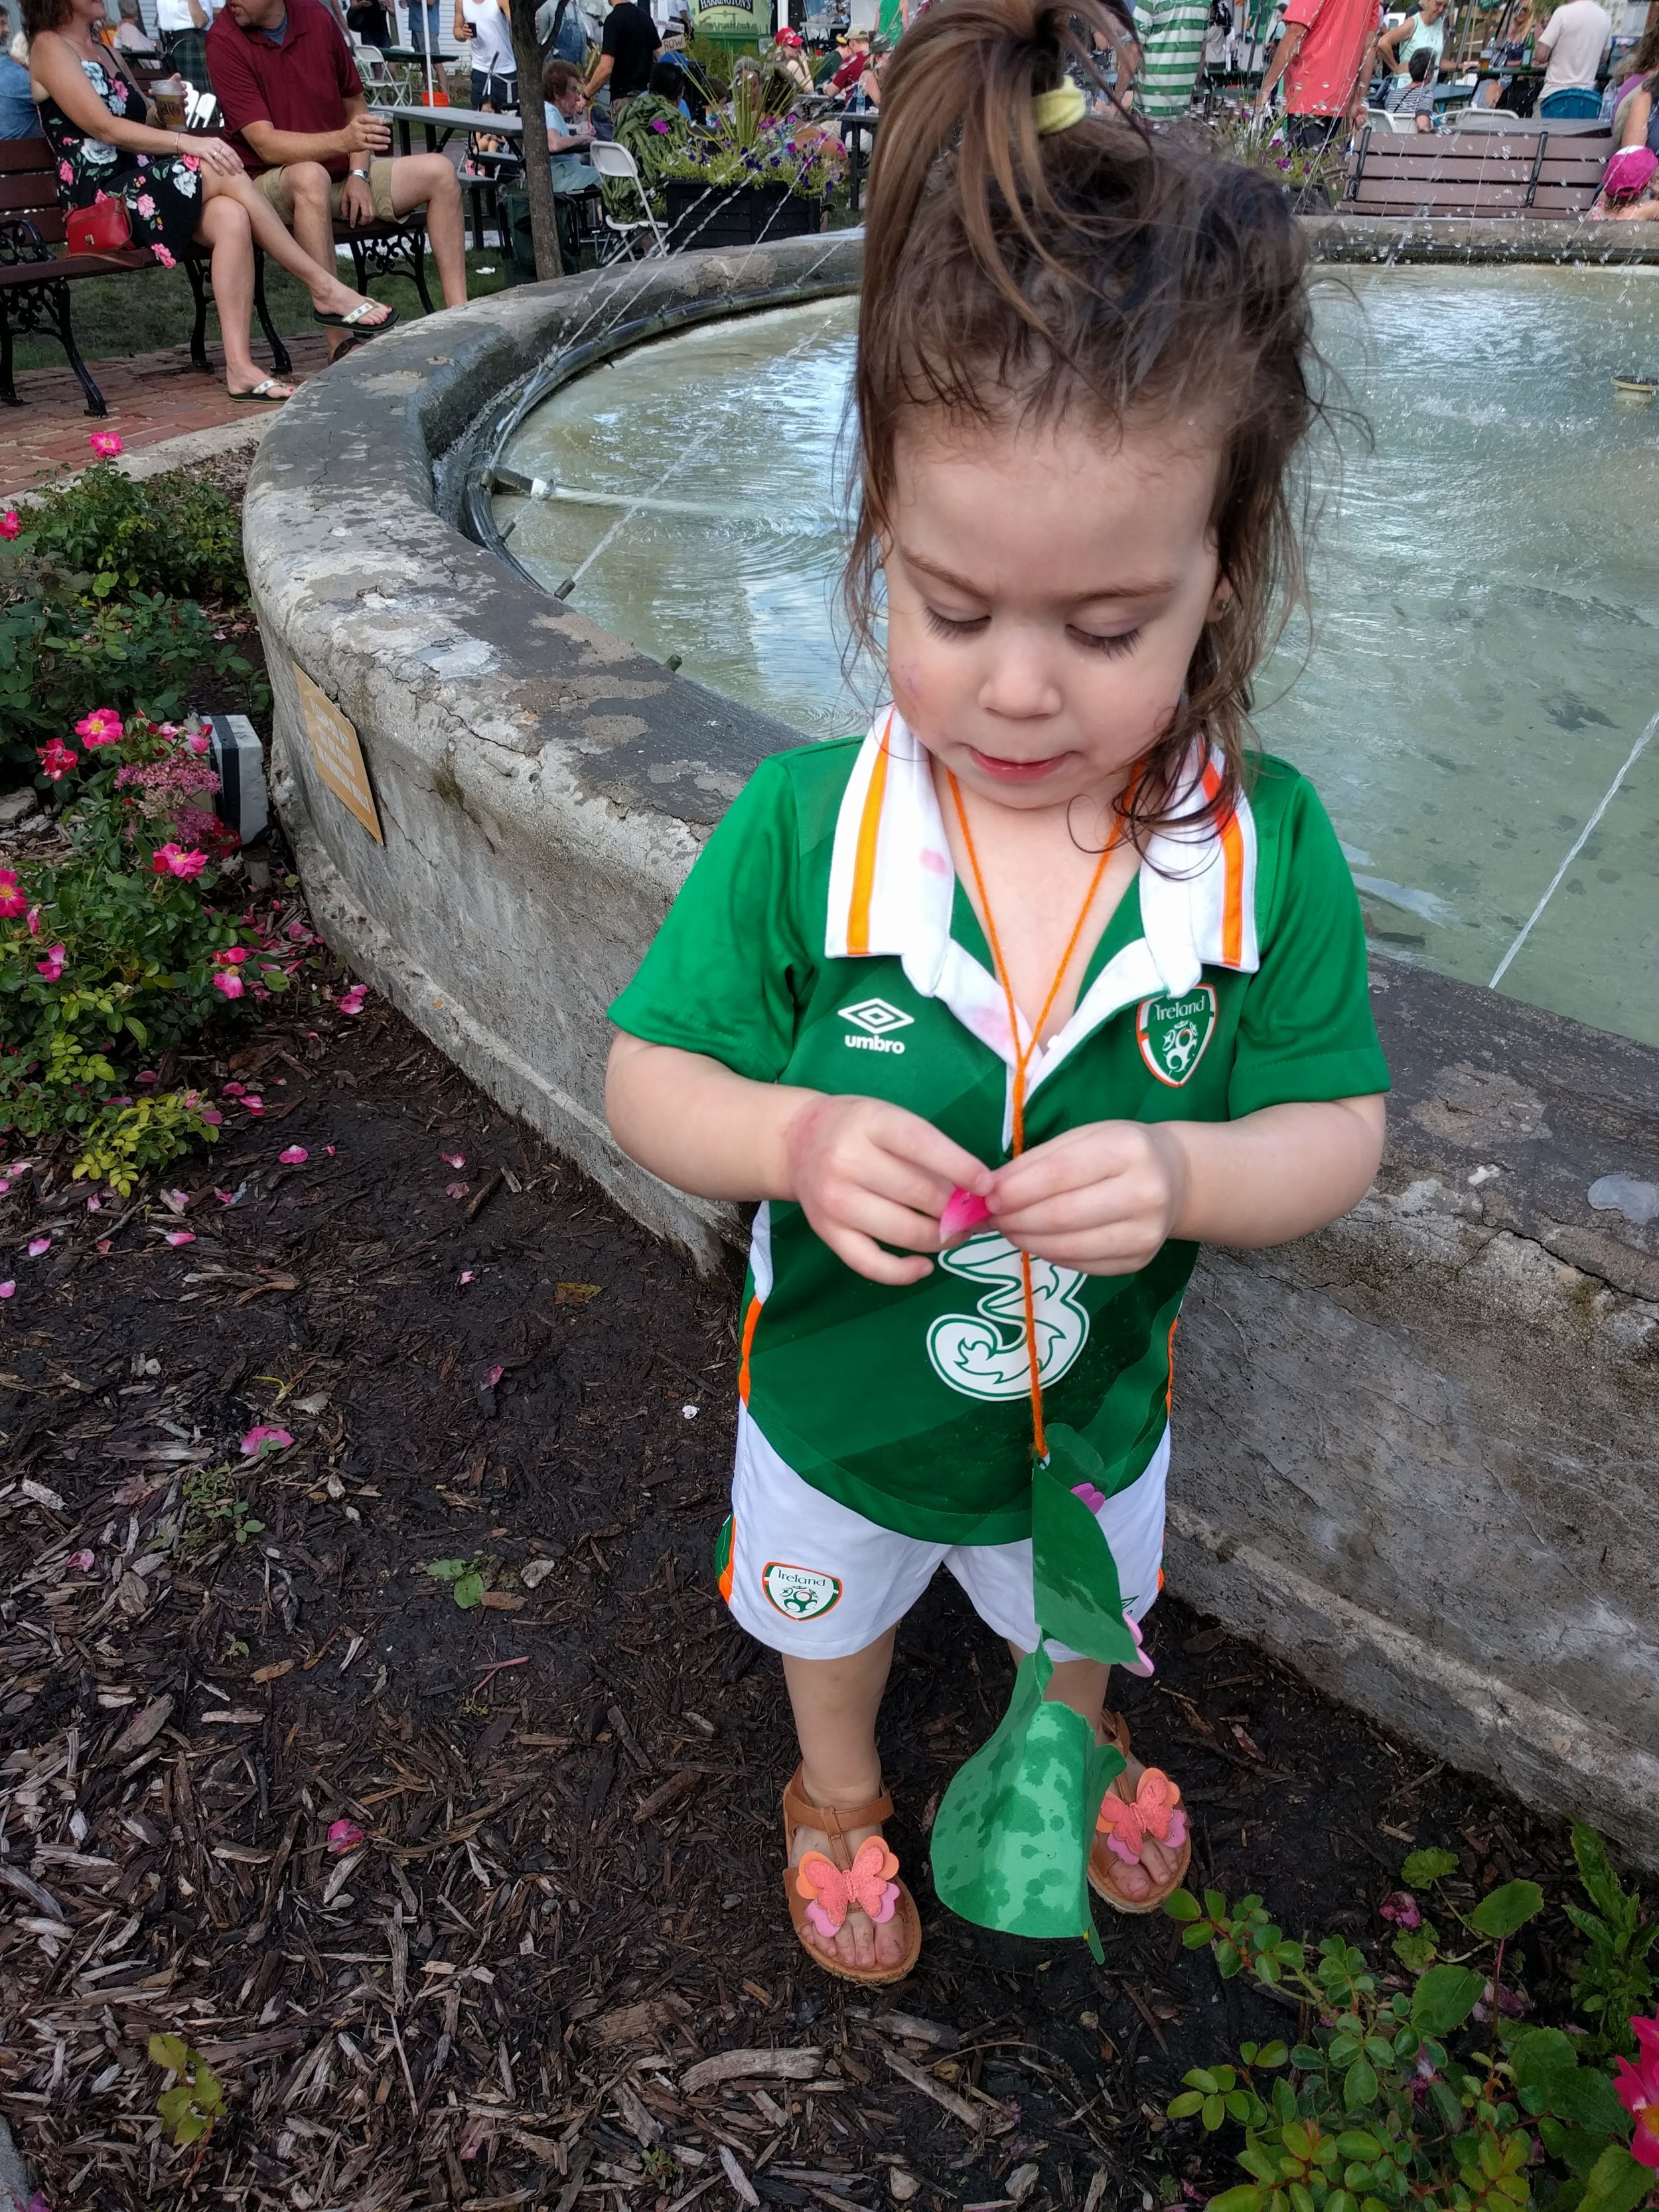 Evil Eve getting into the fountain and damaging the flowers (her necklace as well).